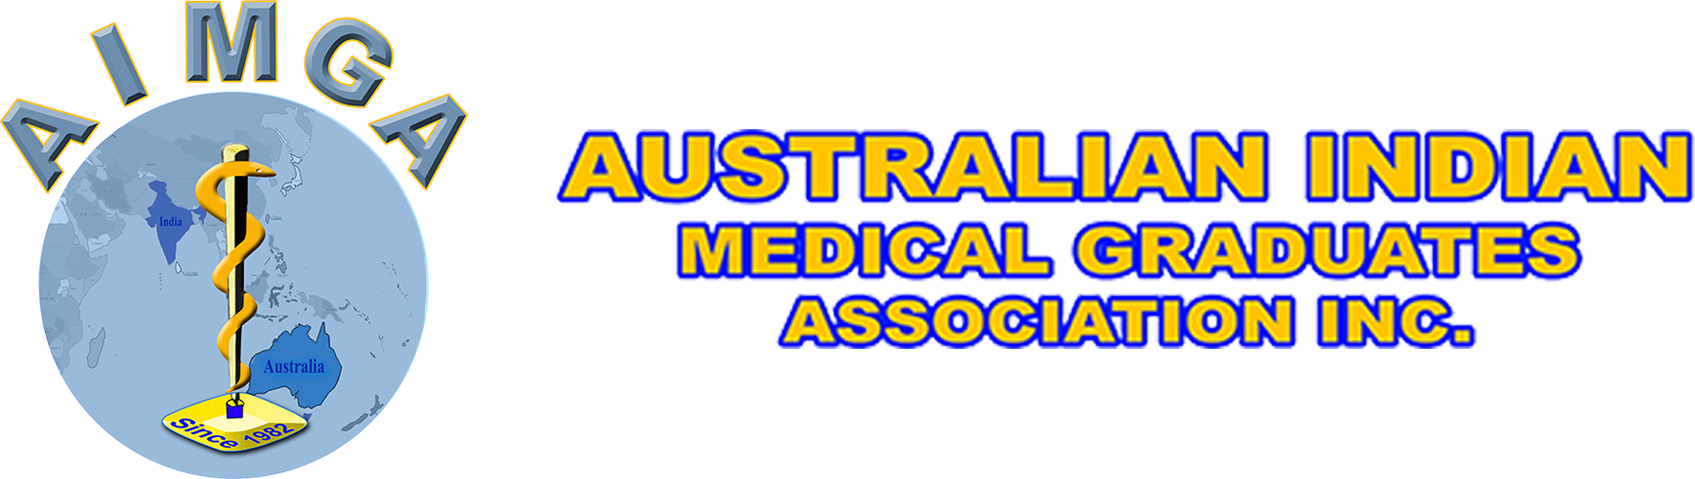 Australian Indian Medical Graduates Association Incorporated